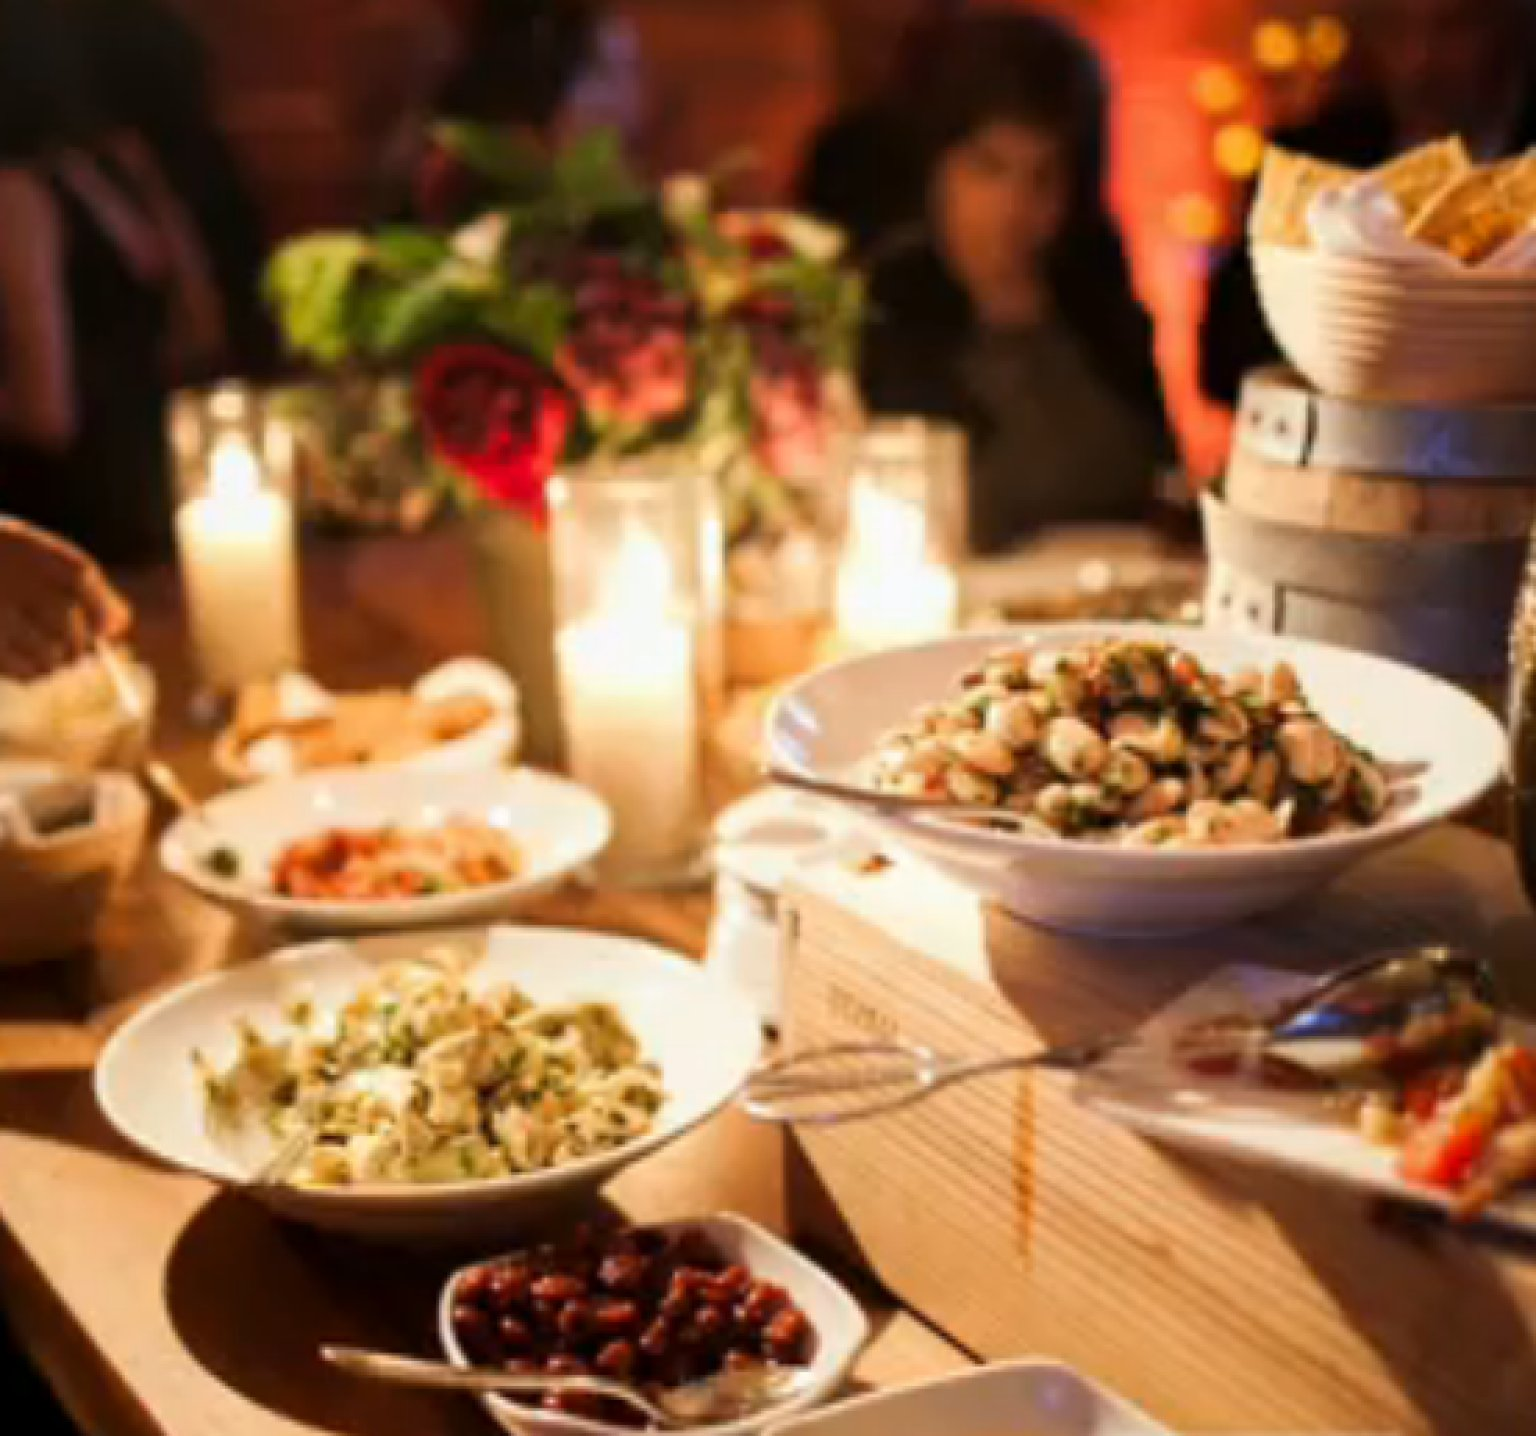 Food Ideas For Wedding: Wedding Food Trends For Fall 2013 (VIDEO